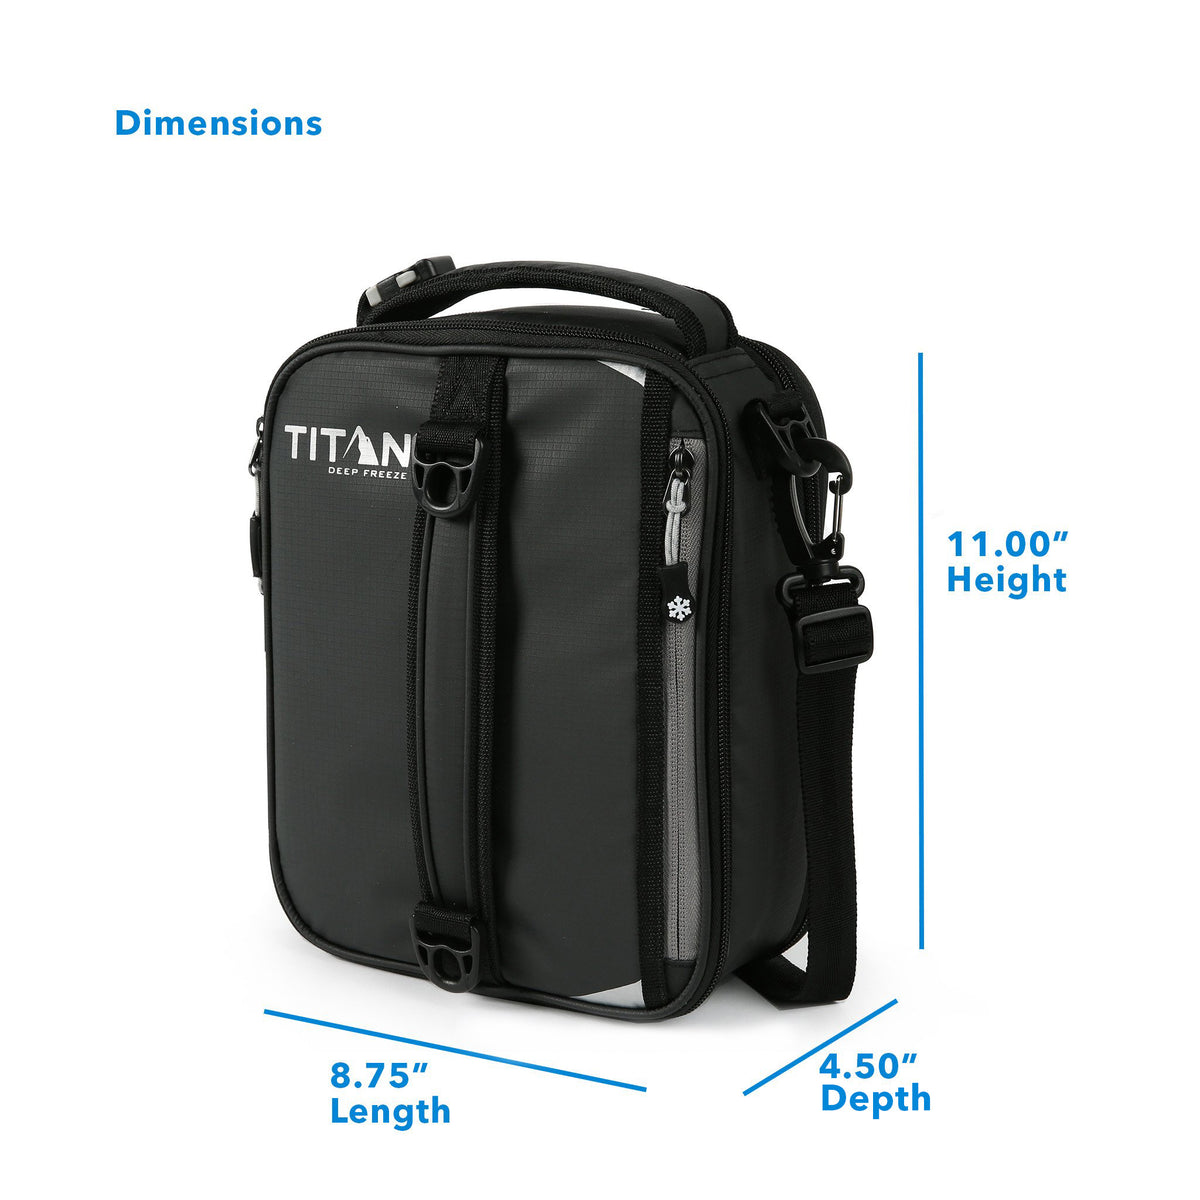 "Titan Deep Freeze® Expandable Lunch Box - Black - Dimensions: (L x D x H) 8.75"" x 4.50"" x 11.00"""